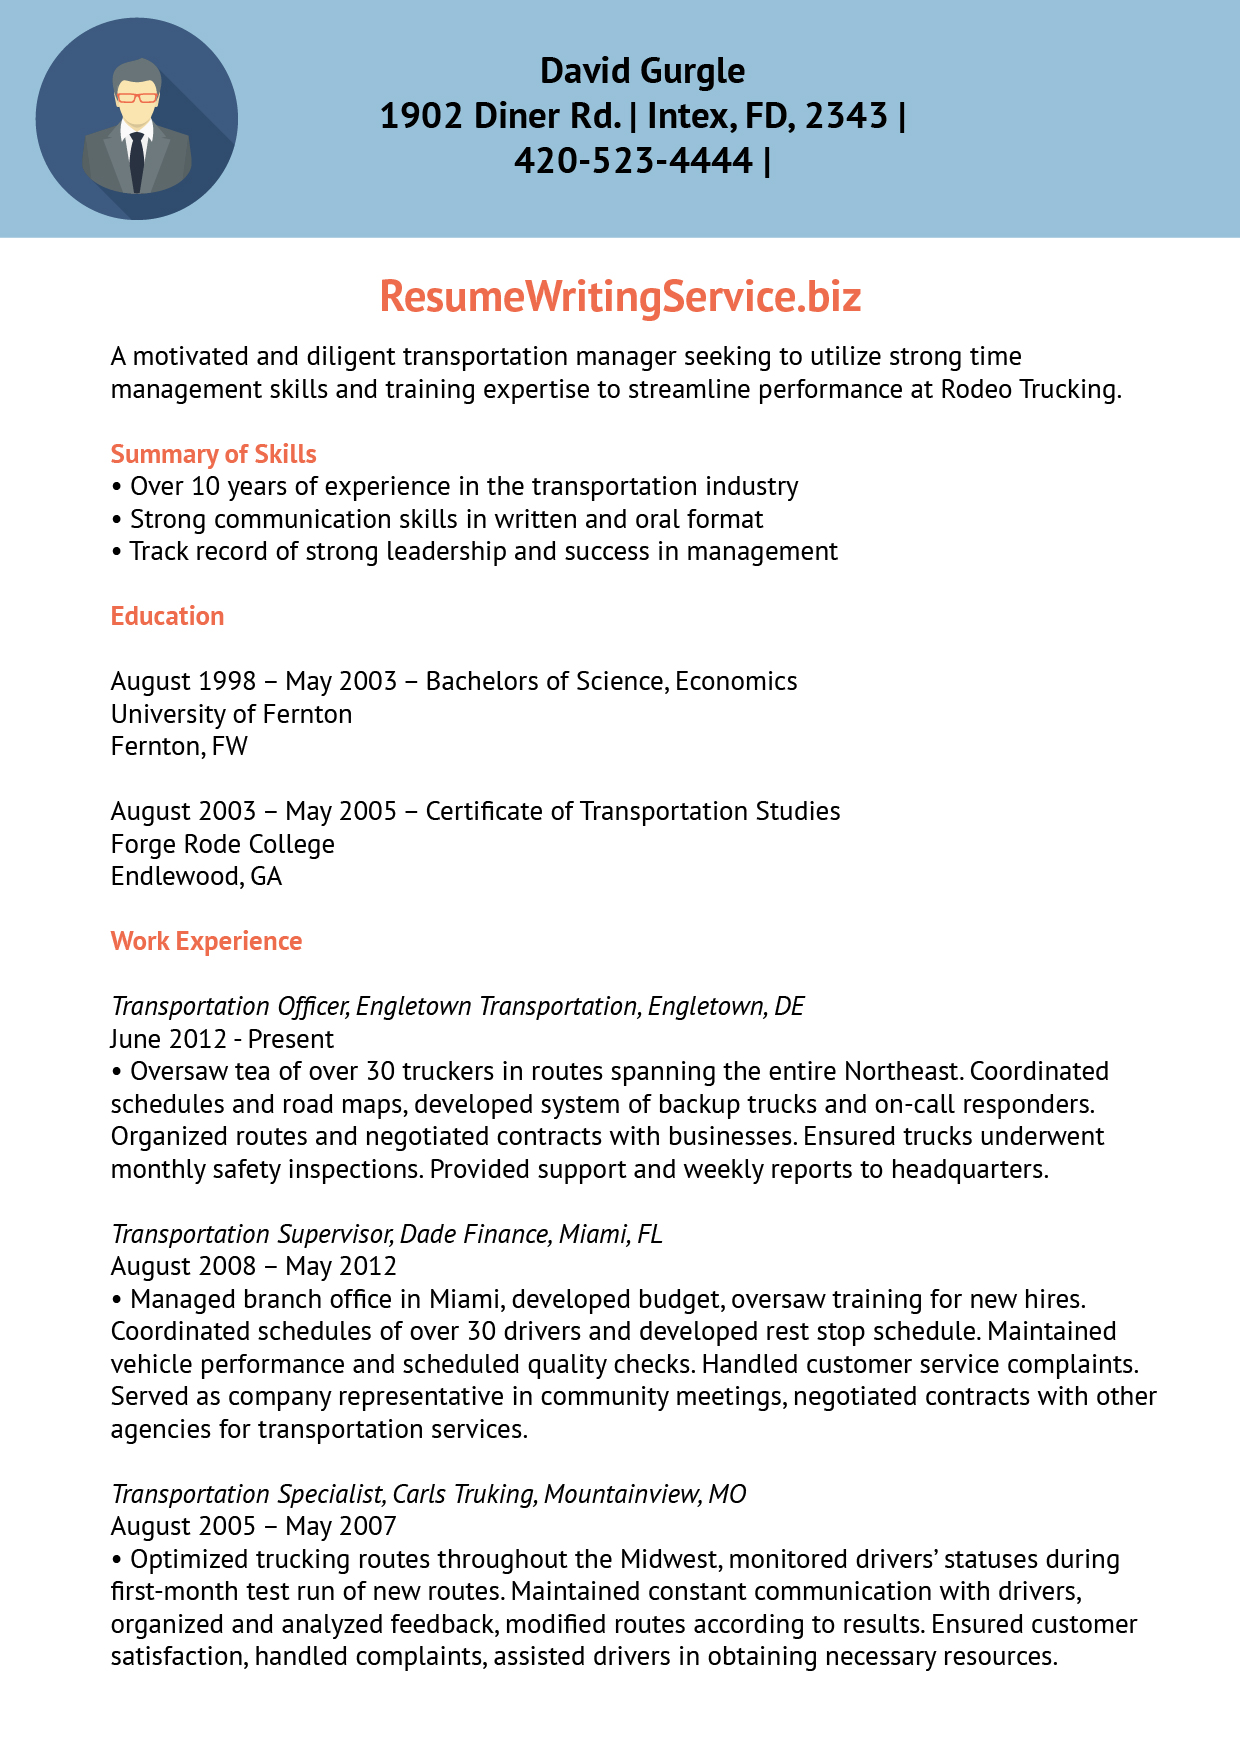 resume examples for transportation - frizzigame - Transportation Resume Examples